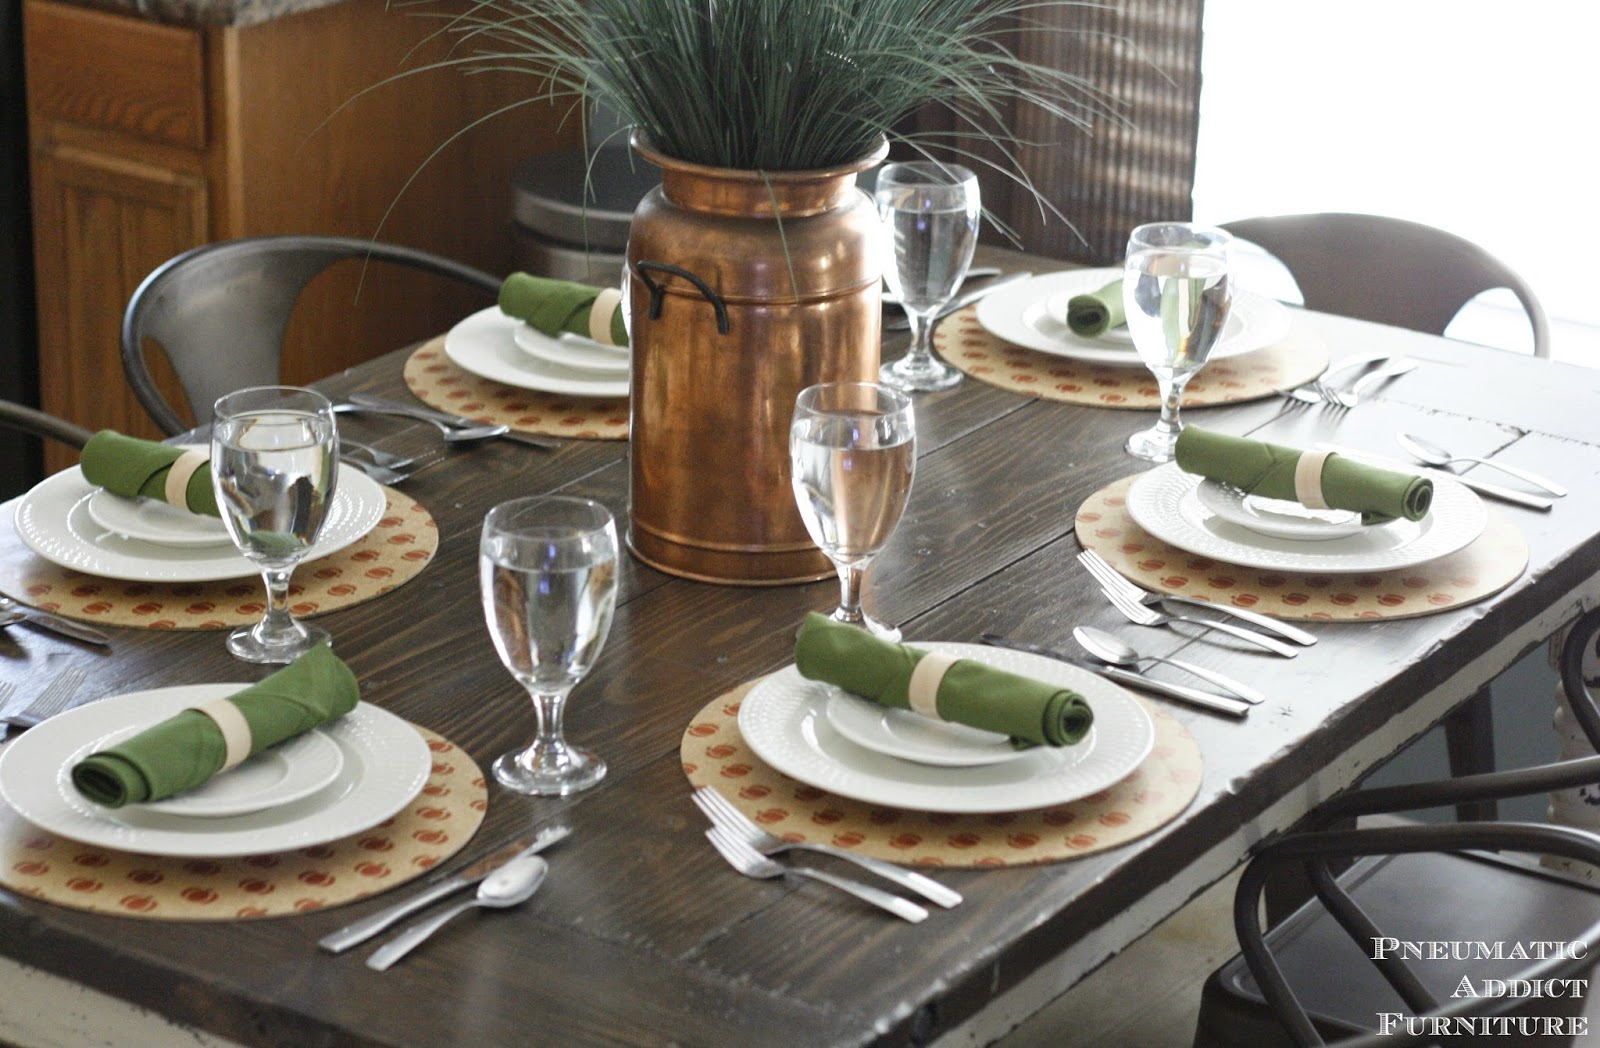 Gentil What Do You Think? Thanksgiving Is Just Around The Corner. Are You Going To  Have A Set Of DIY Wood Plate Chargers At Your Table?